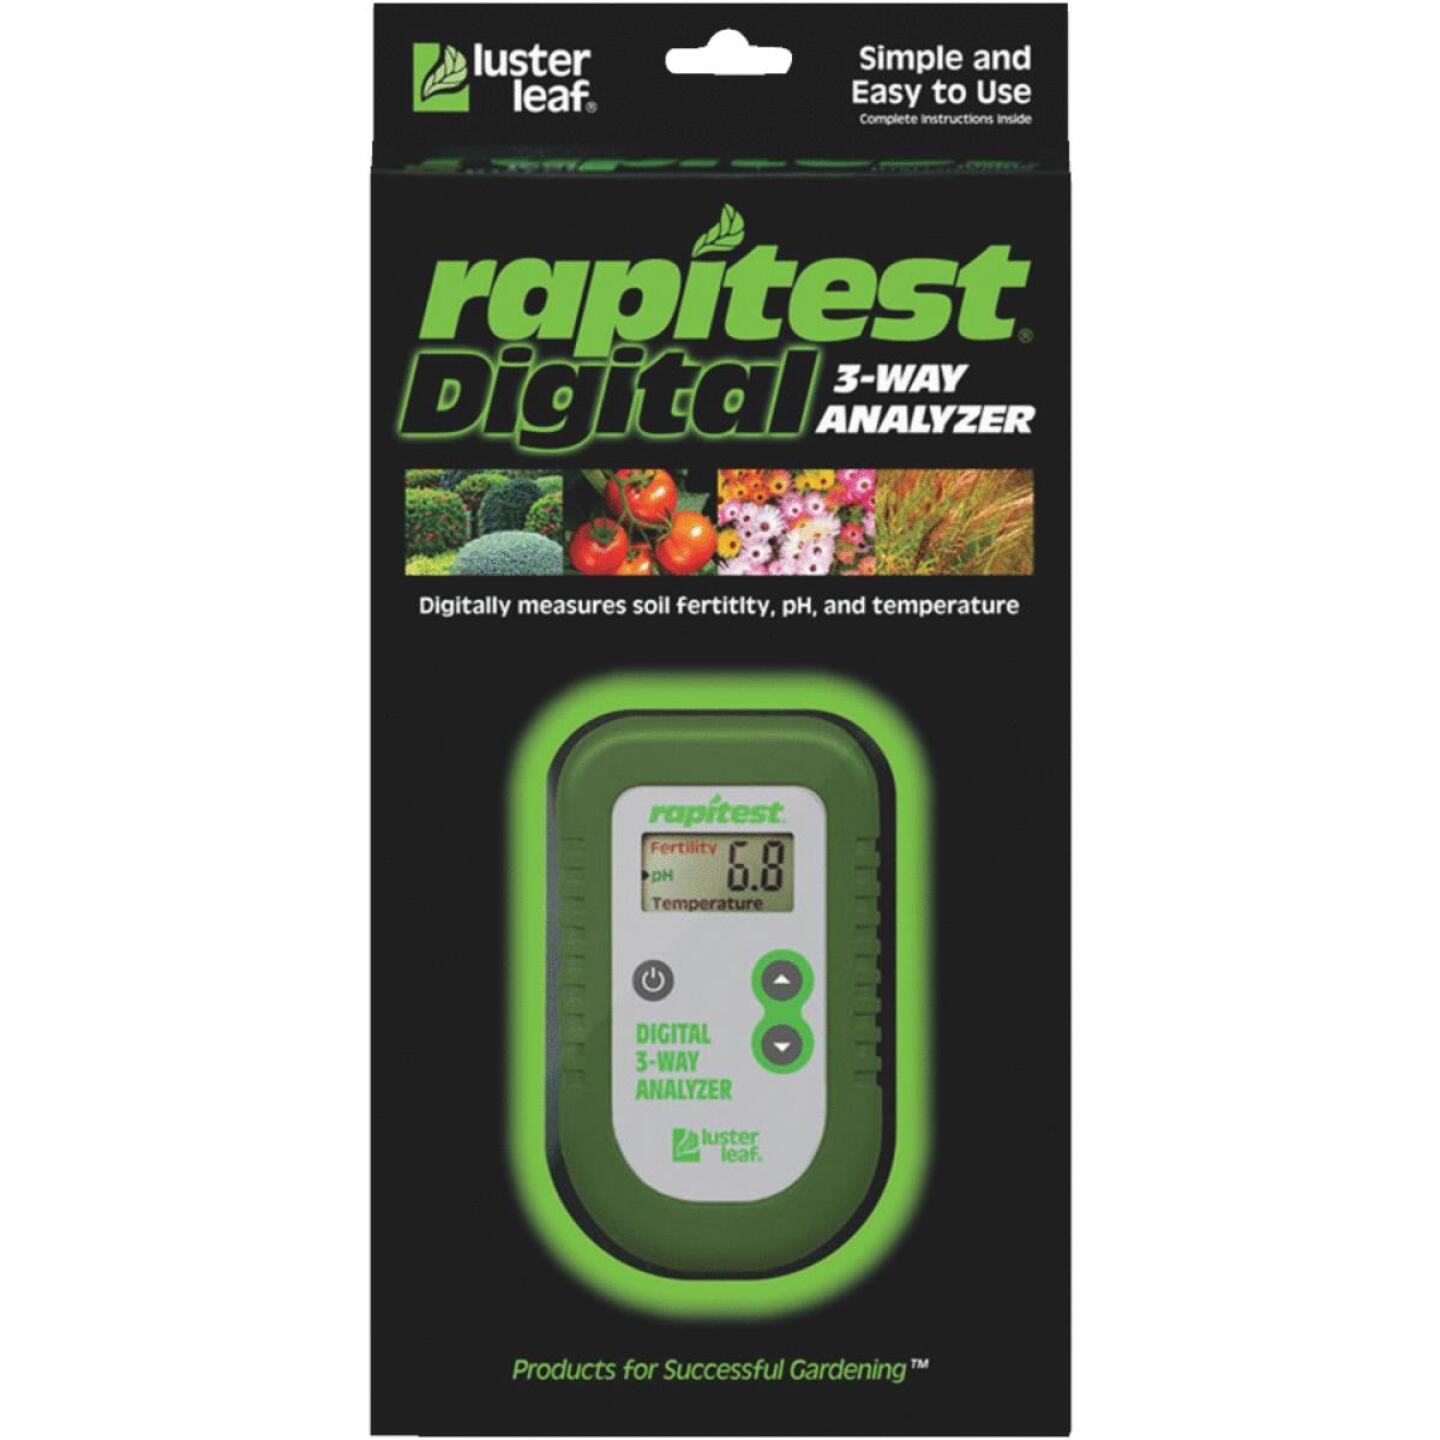 Rapitest Plastic w/Metal Probe 3-Way Digital Soil Tester Image 2